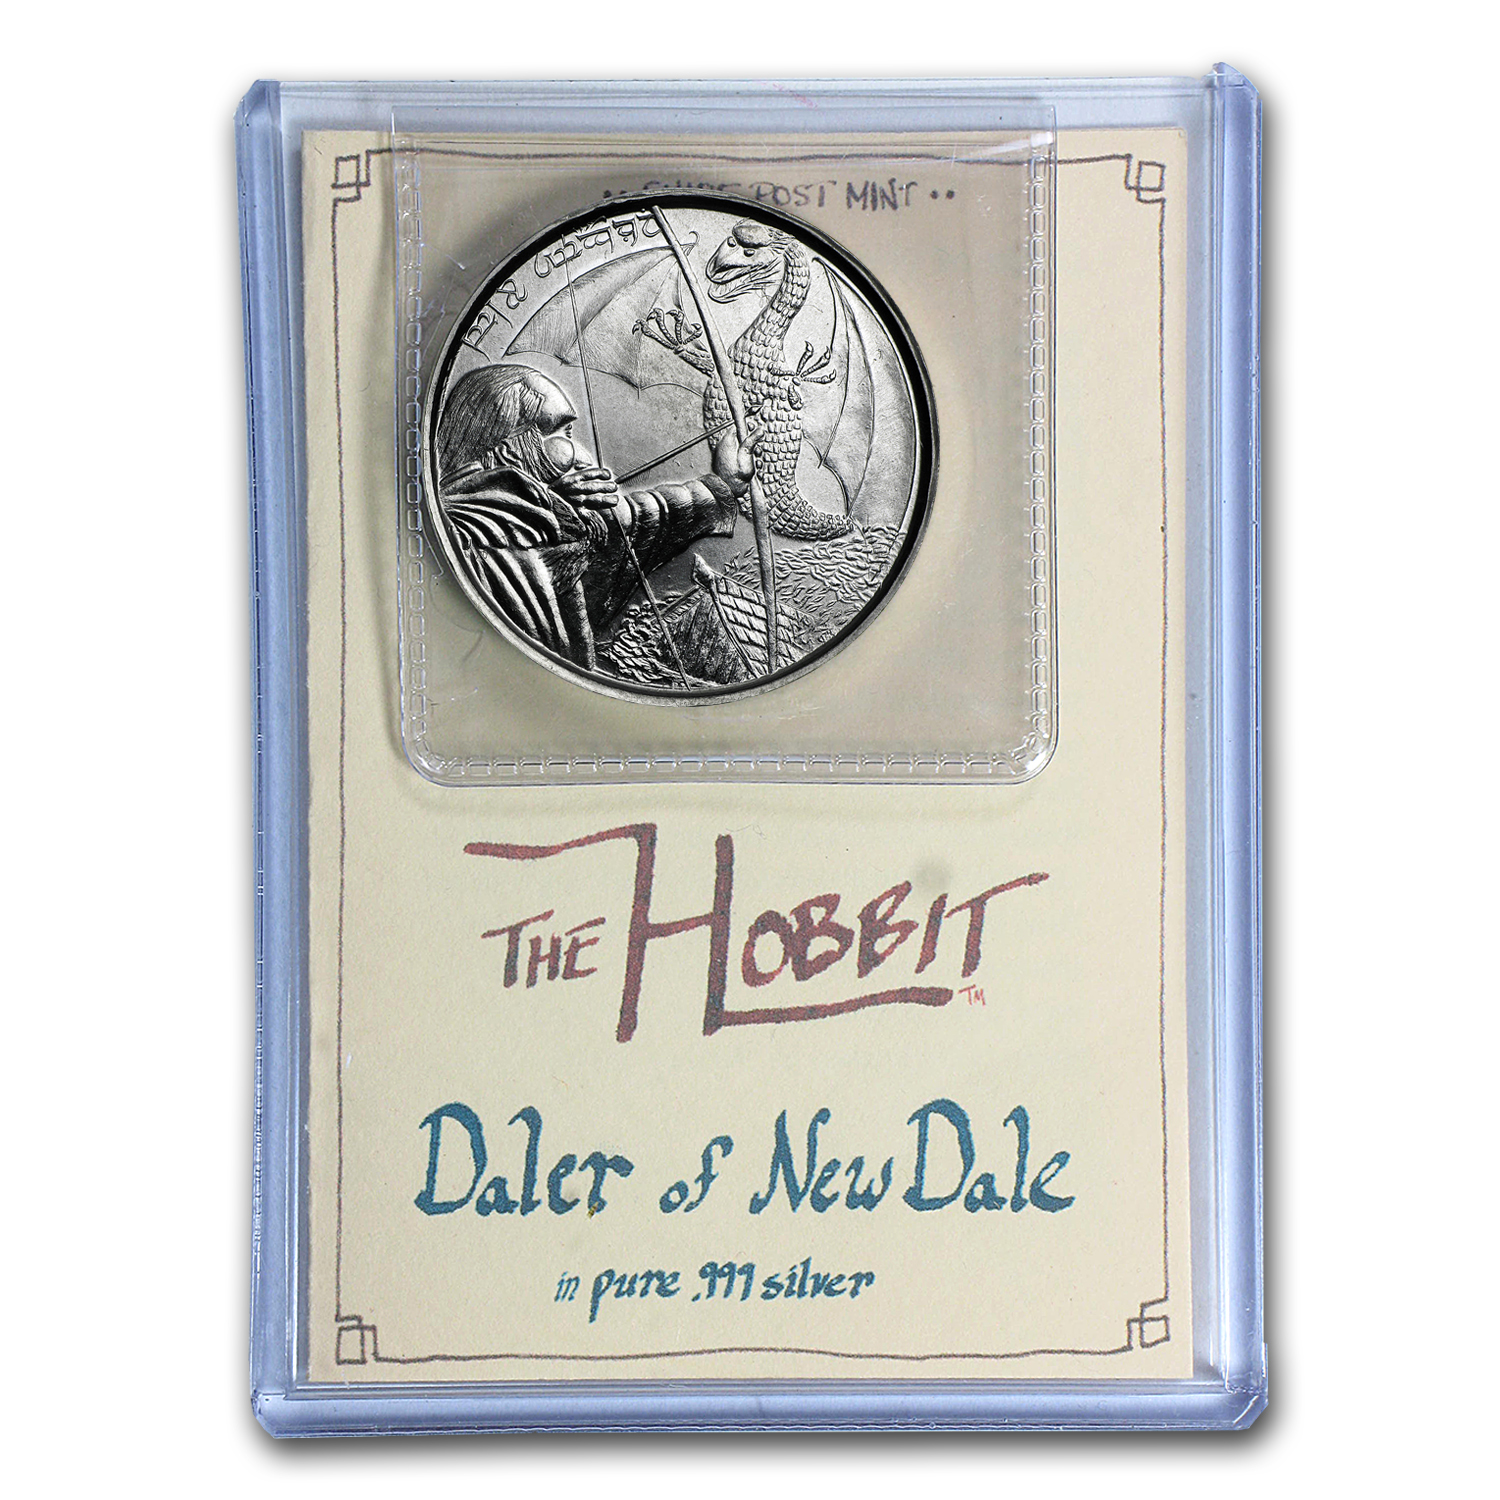 1 oz Silver Round - The Hobbit: The Daler of New Dale